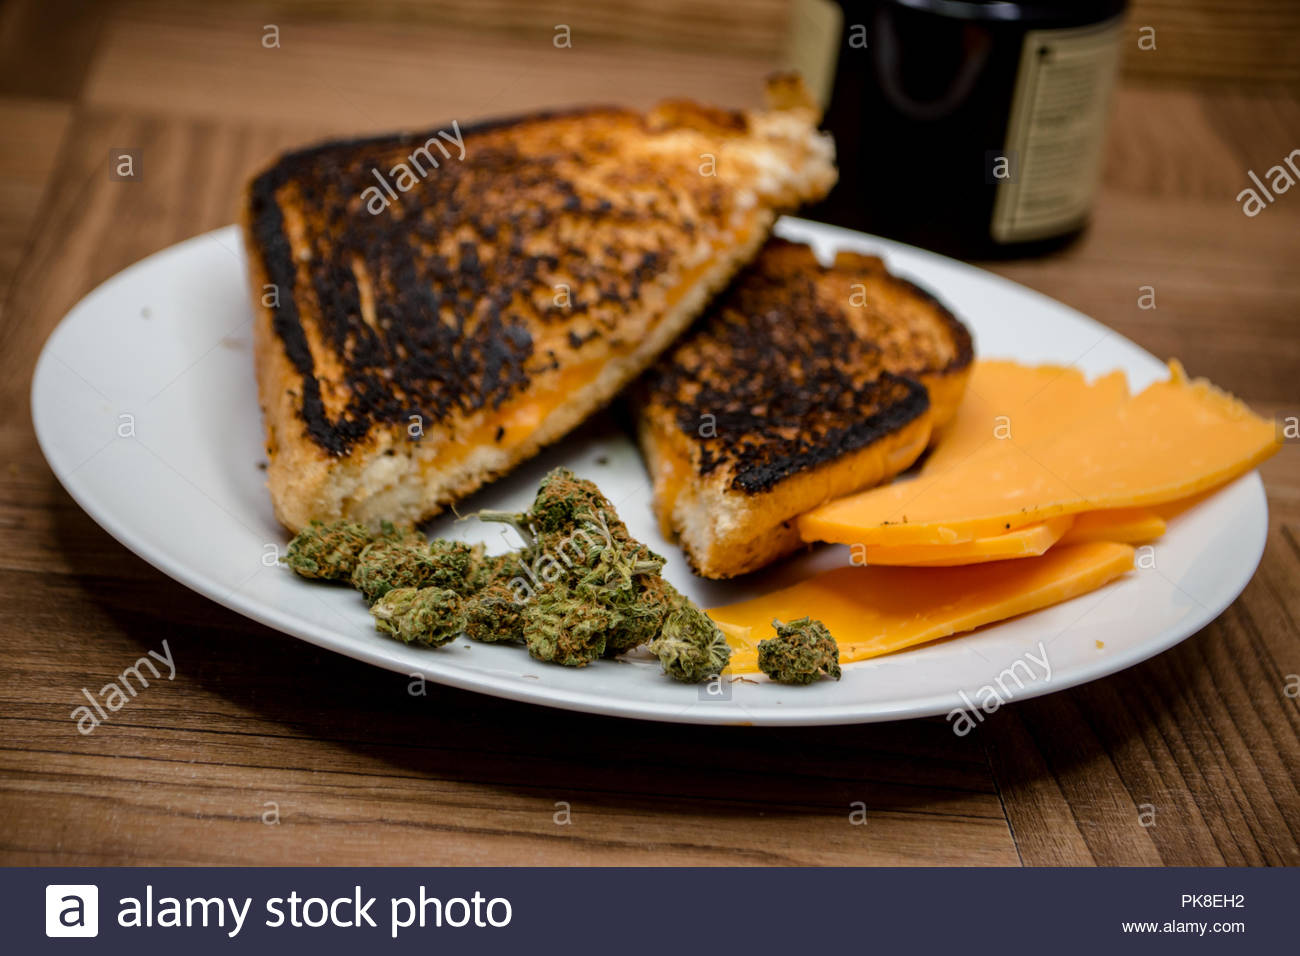 There are lots of chese strains of marijuana. This is a play on that. - Stock Image